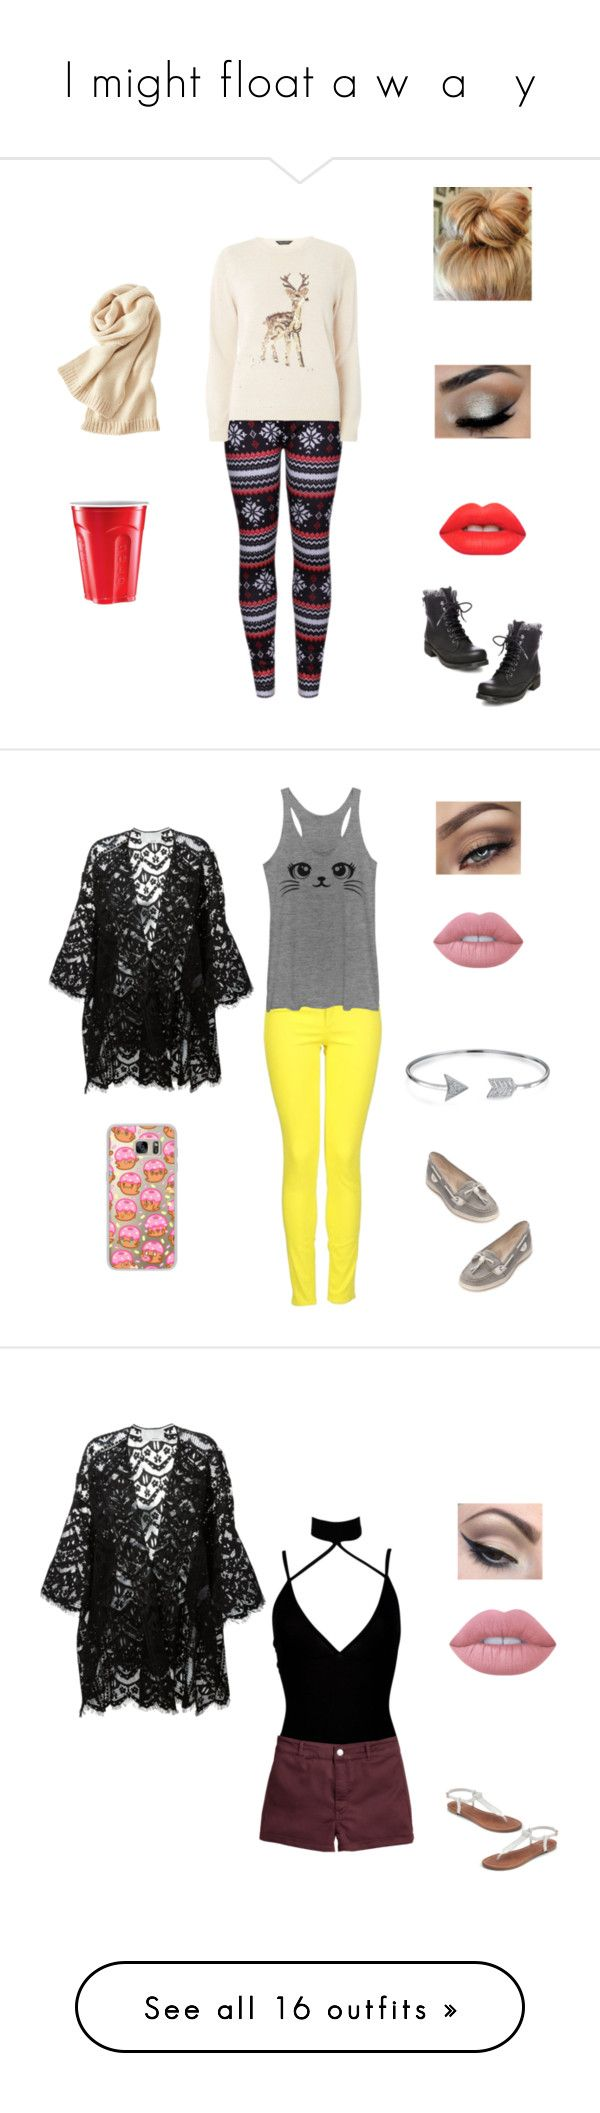 """""""I might float a w  a   y"""" by fashionistaax on Polyvore featuring WithChic, Dorothy Perkins, Steve Madden, Lime Crime, Uniqlo, bags, handbags, tote bags, purses and accessories"""